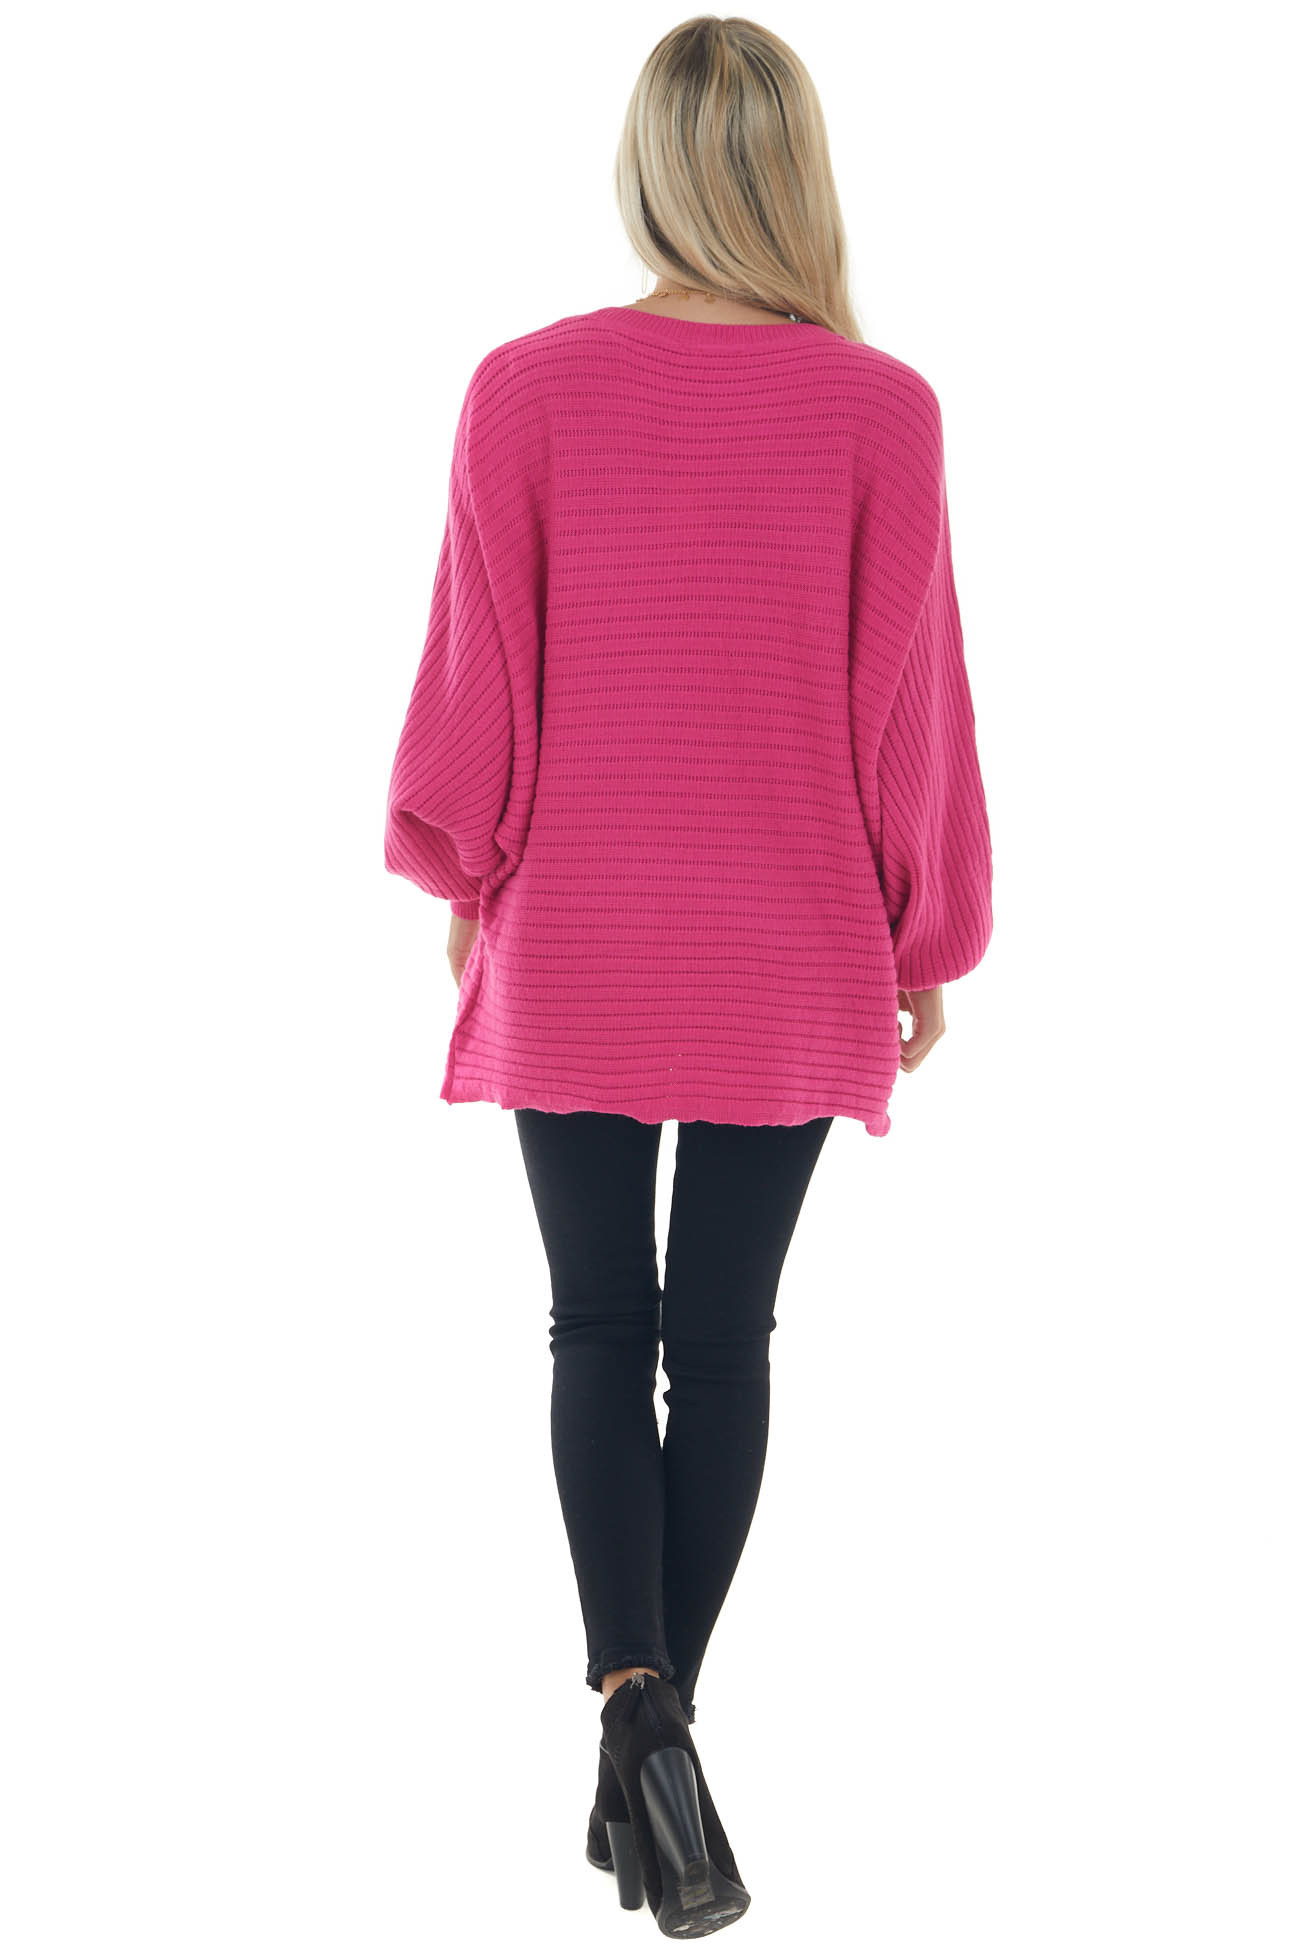 Hot Pink Oversized Ribbed Knit Dolman Sweater